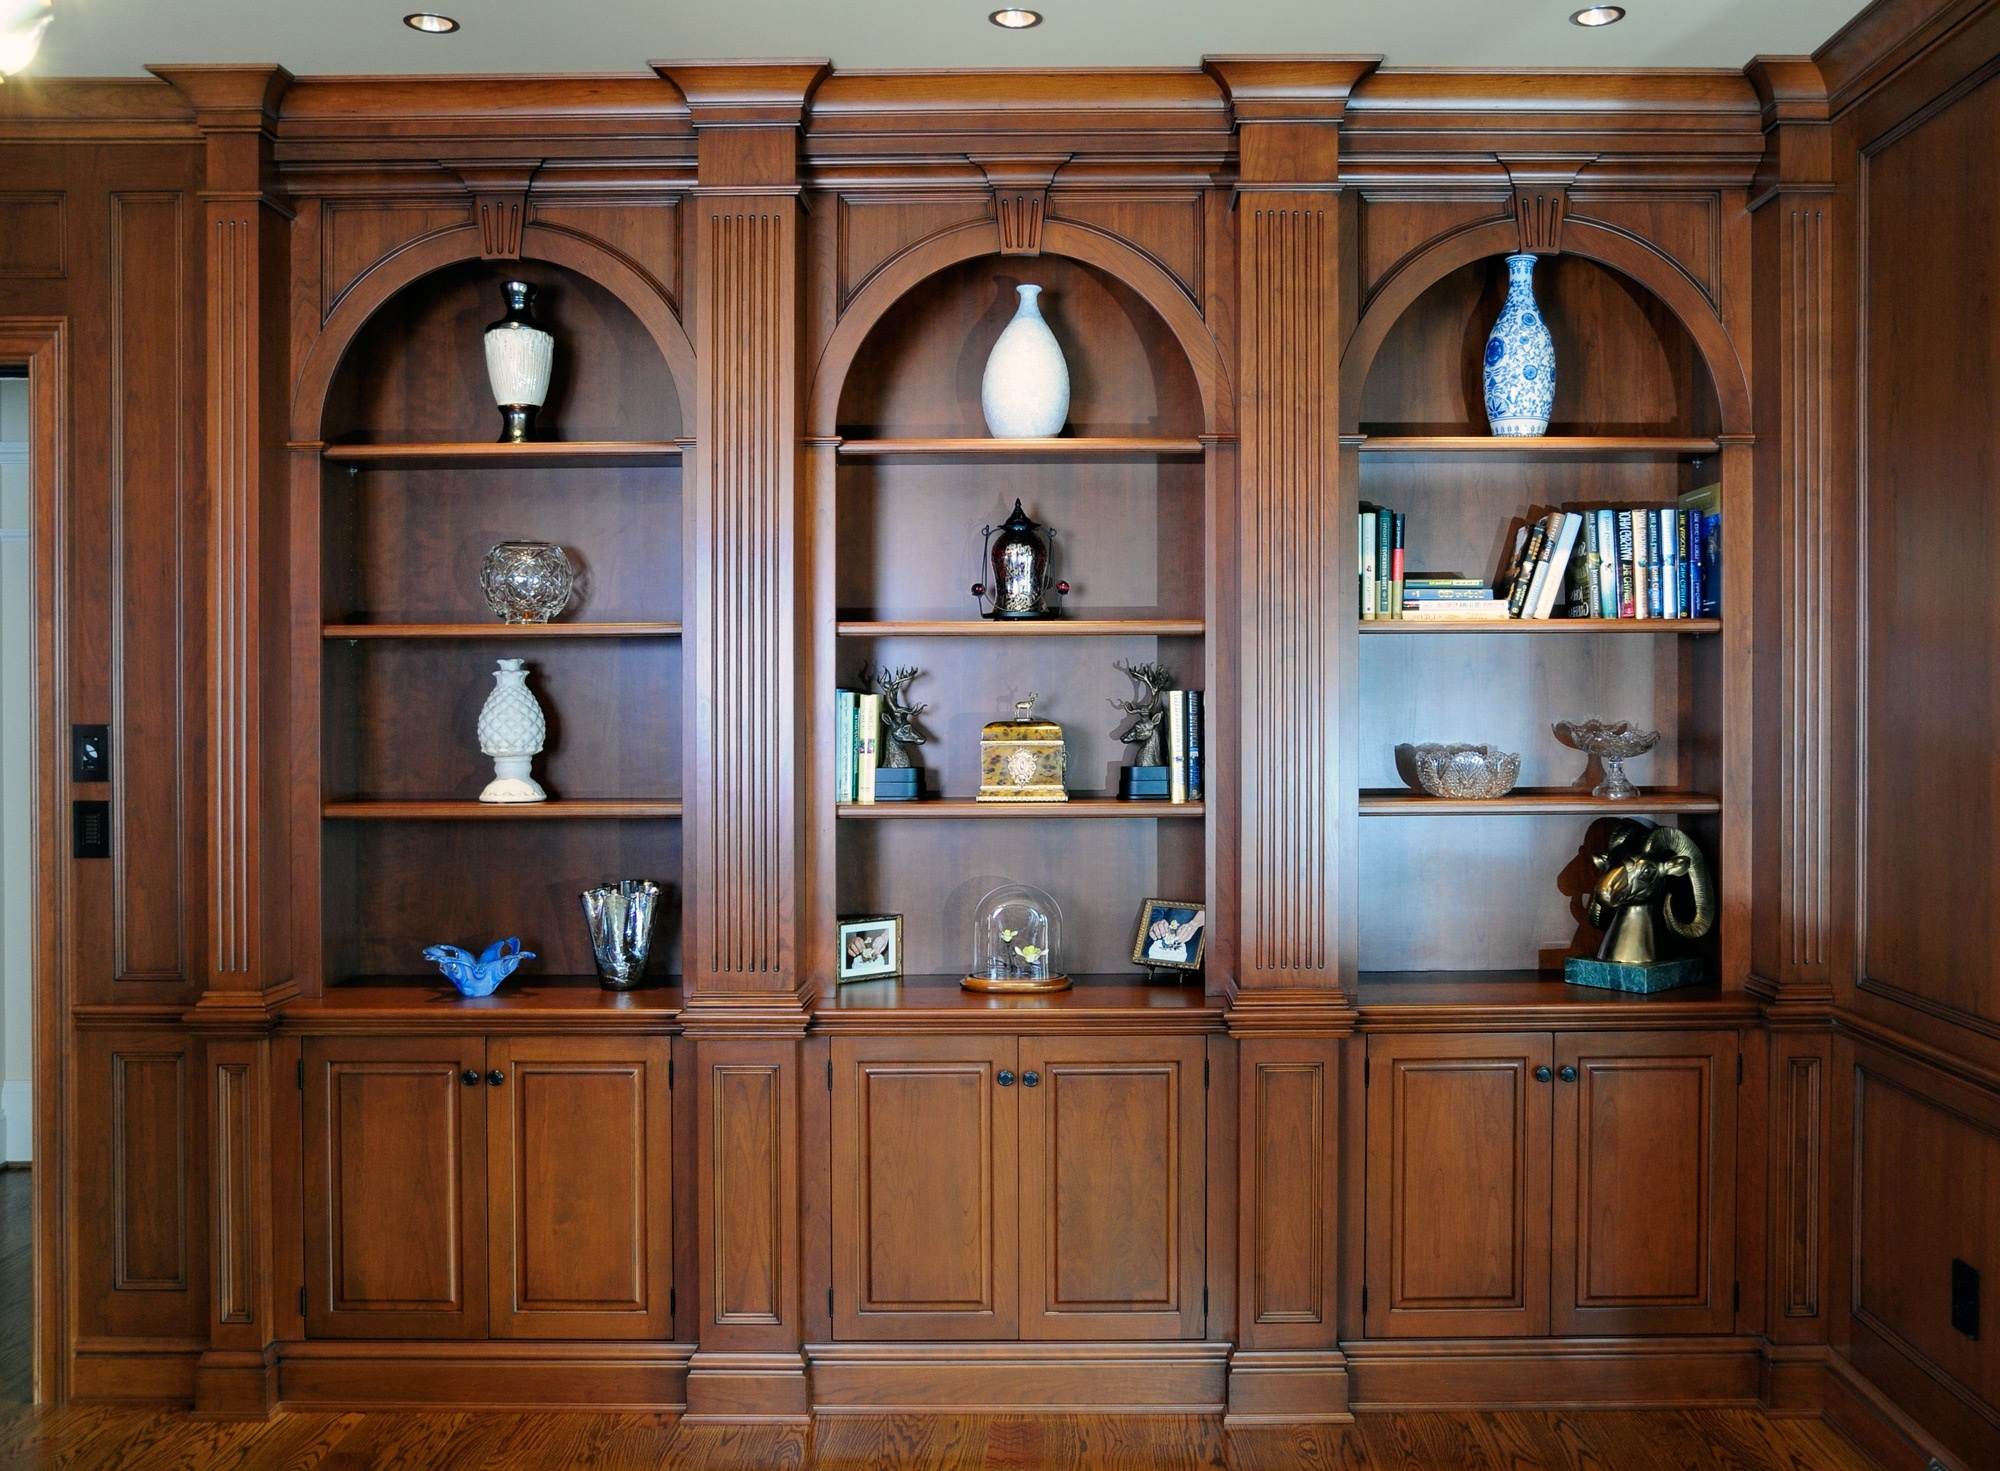 Wood Bookcases Intended For Most Popular Elegant Arched Cherry Wood Bookcases – Custom Cabinetryken Leech (View 12 of 15)